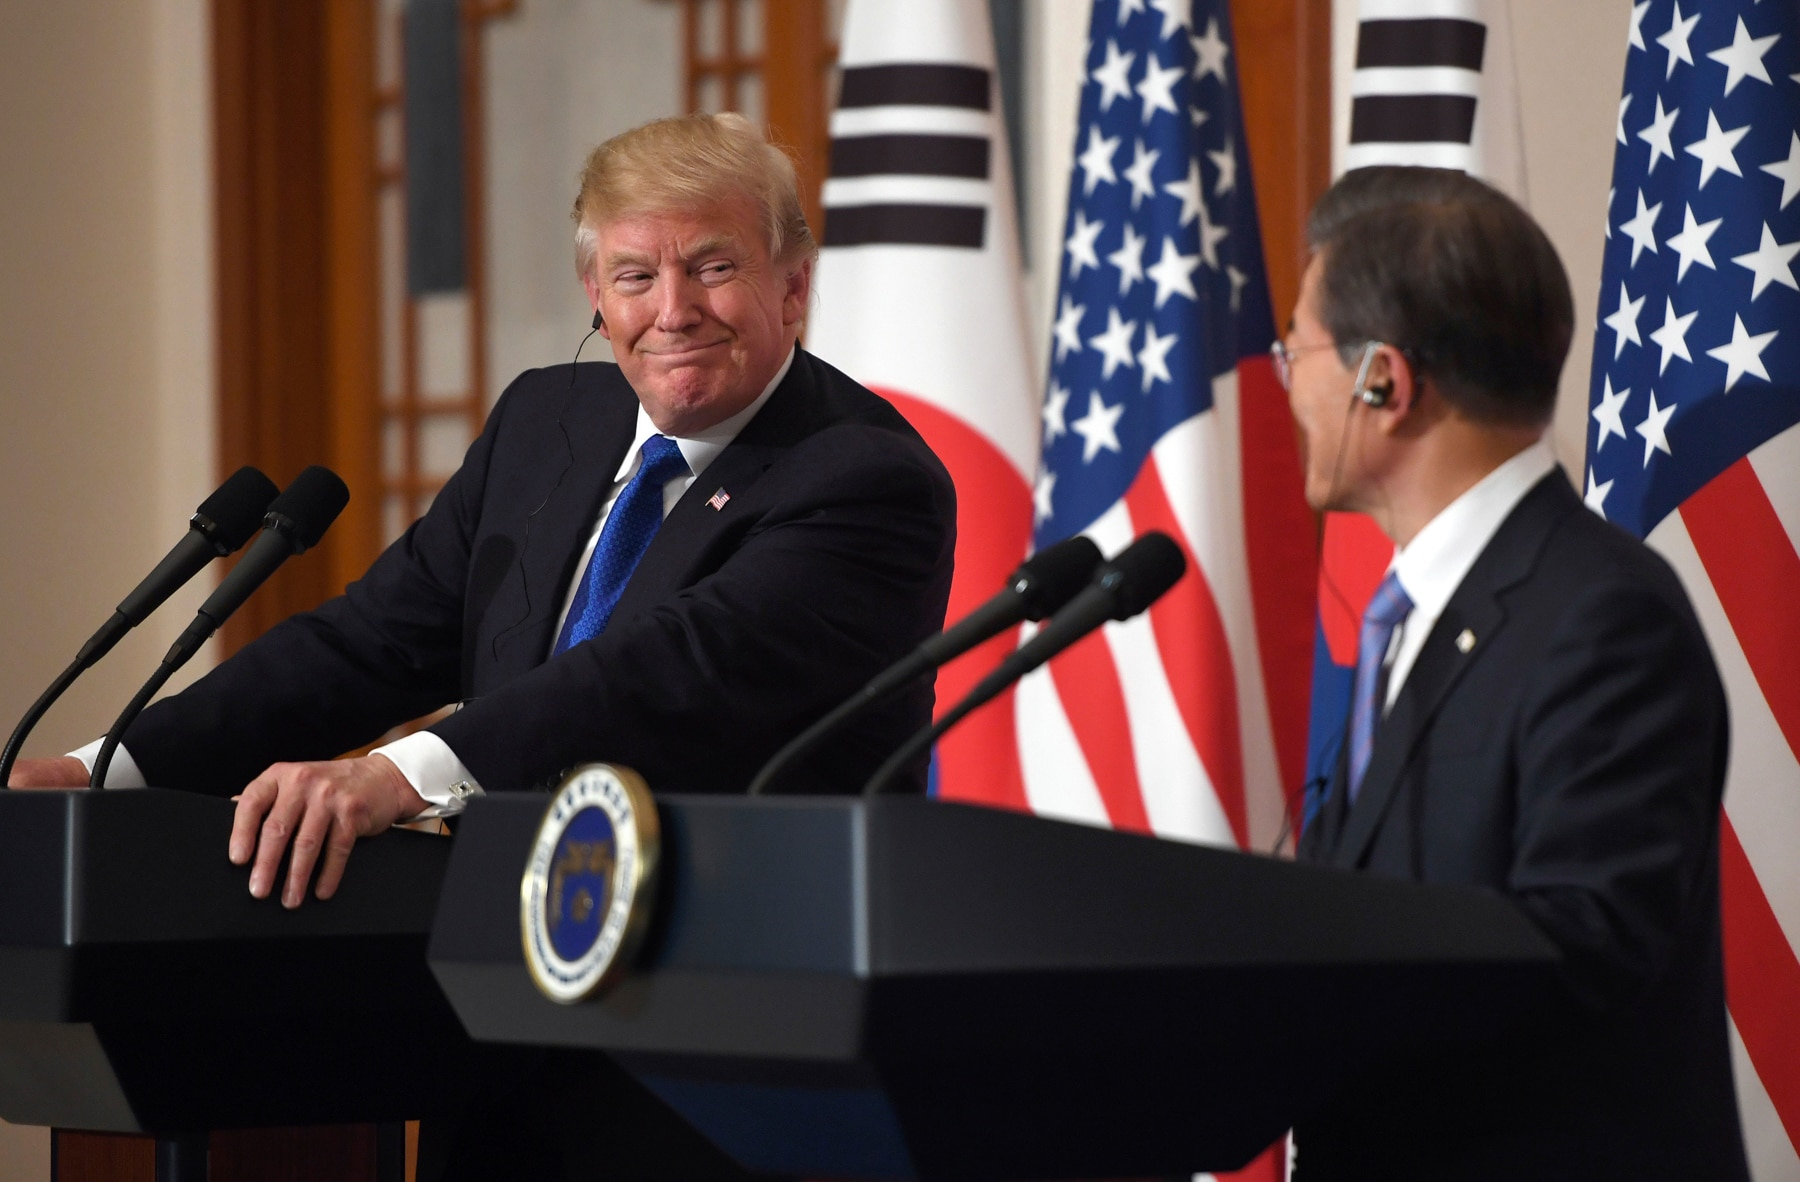 U.S. President Donald Trump and South Korean President Moon Jae-in at lecterns (© AP Images)